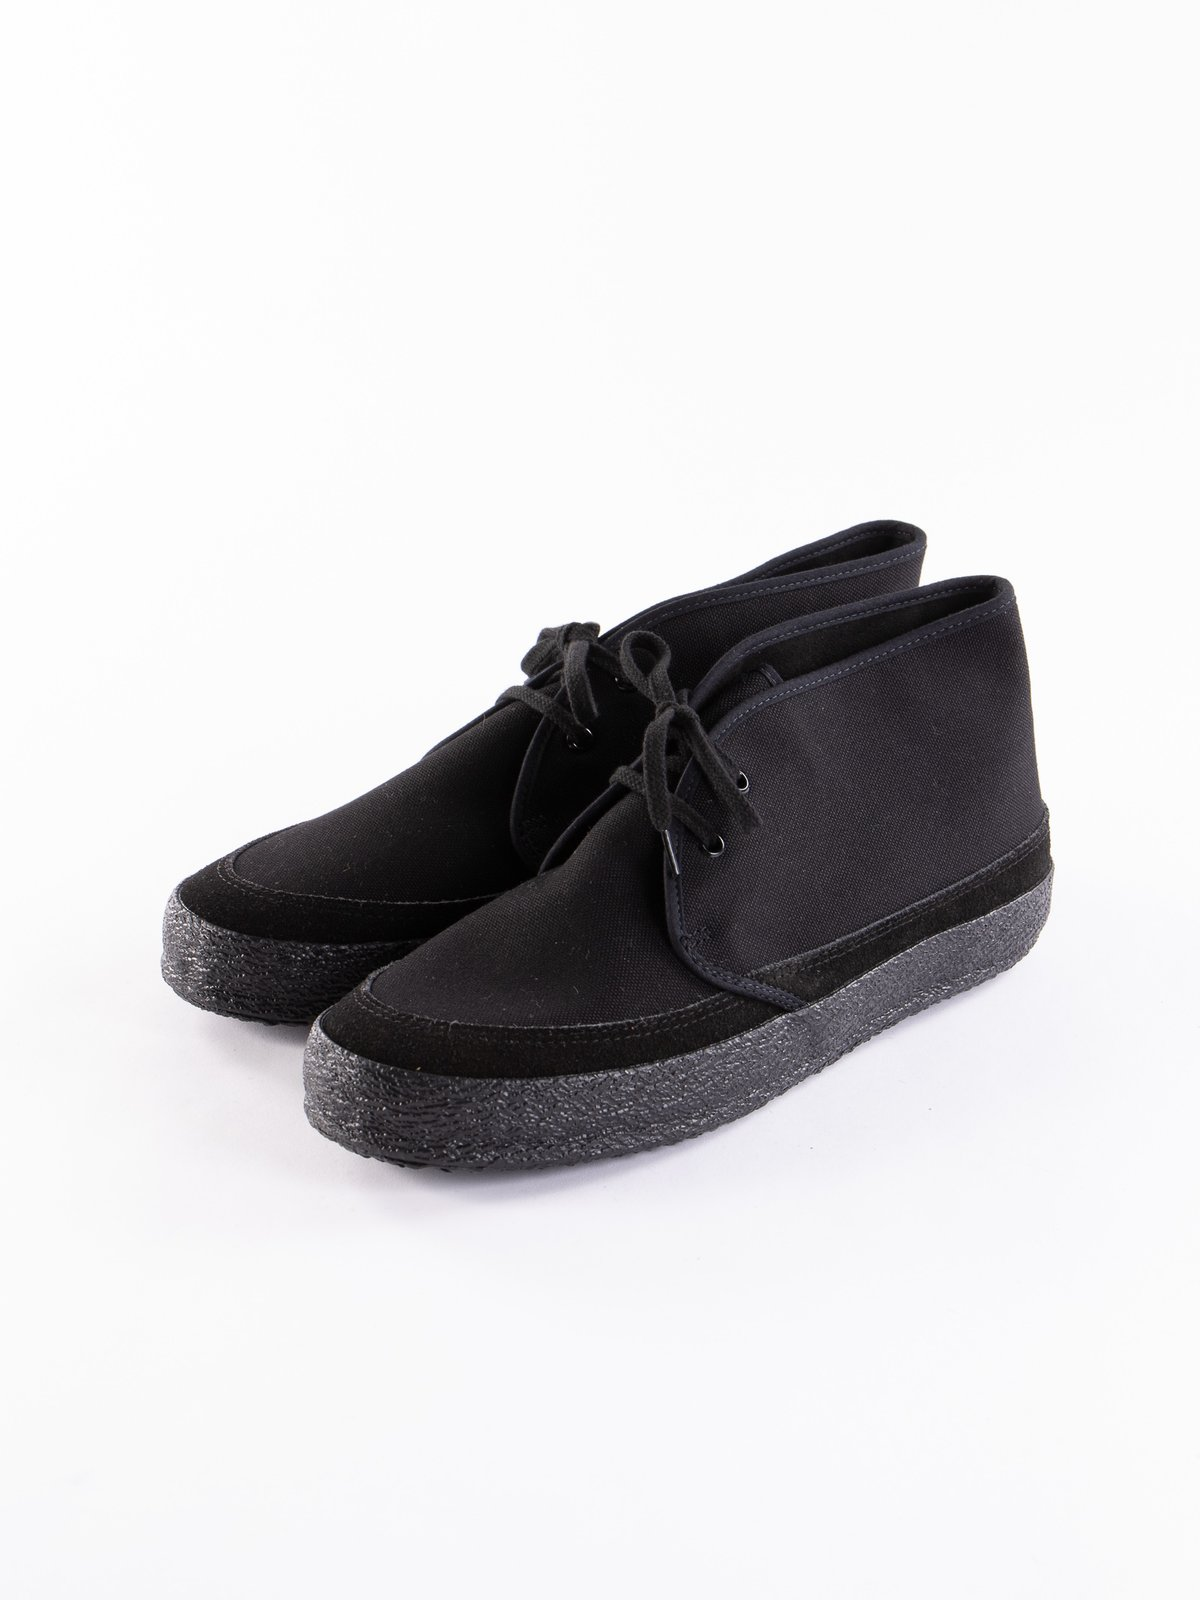 Black Sloth Chukka - Image 2